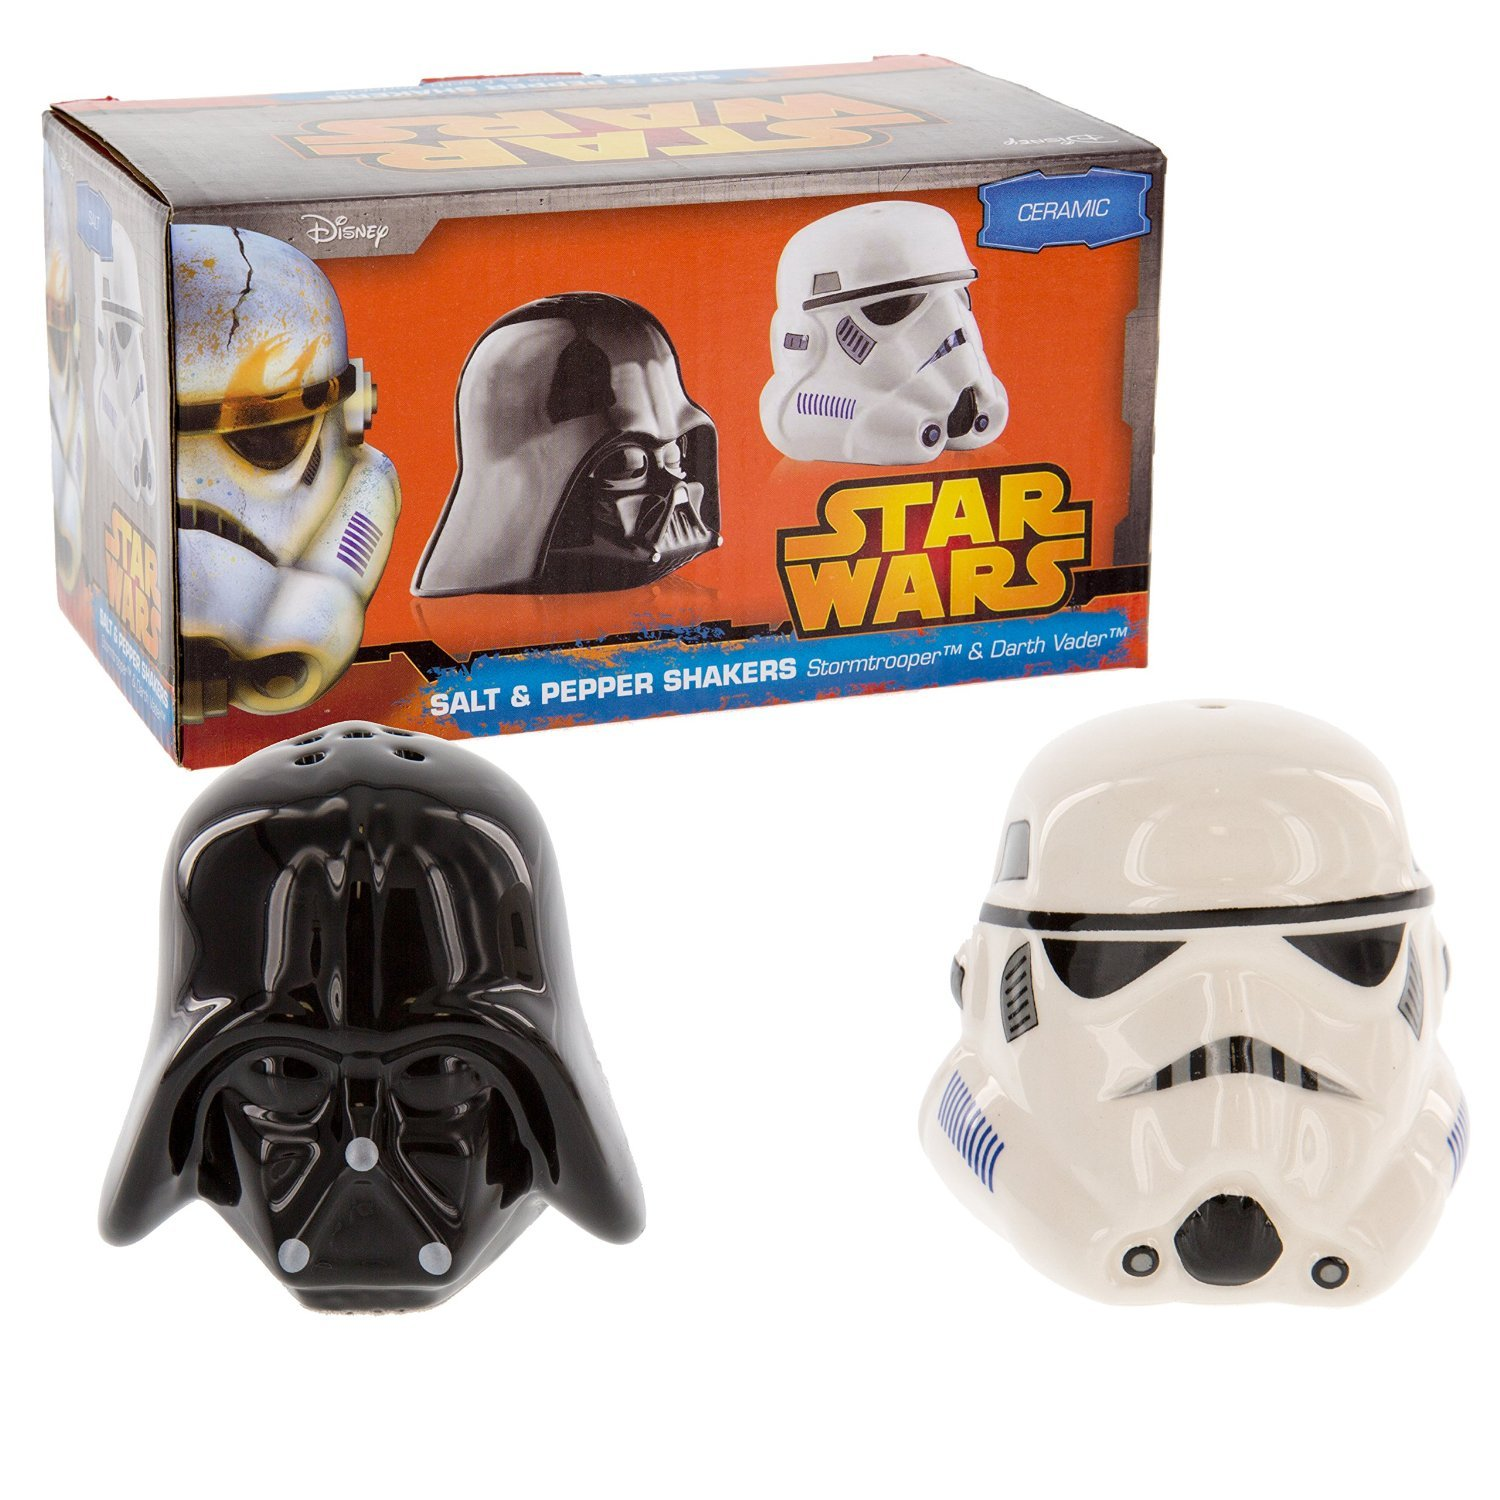 Star Wars Ceramic Salt and Pepper Shakers - Darth Vader & Stormtrooper - Take your Meals to the Darkside! Artist Not Provided Underground Toys SW00696